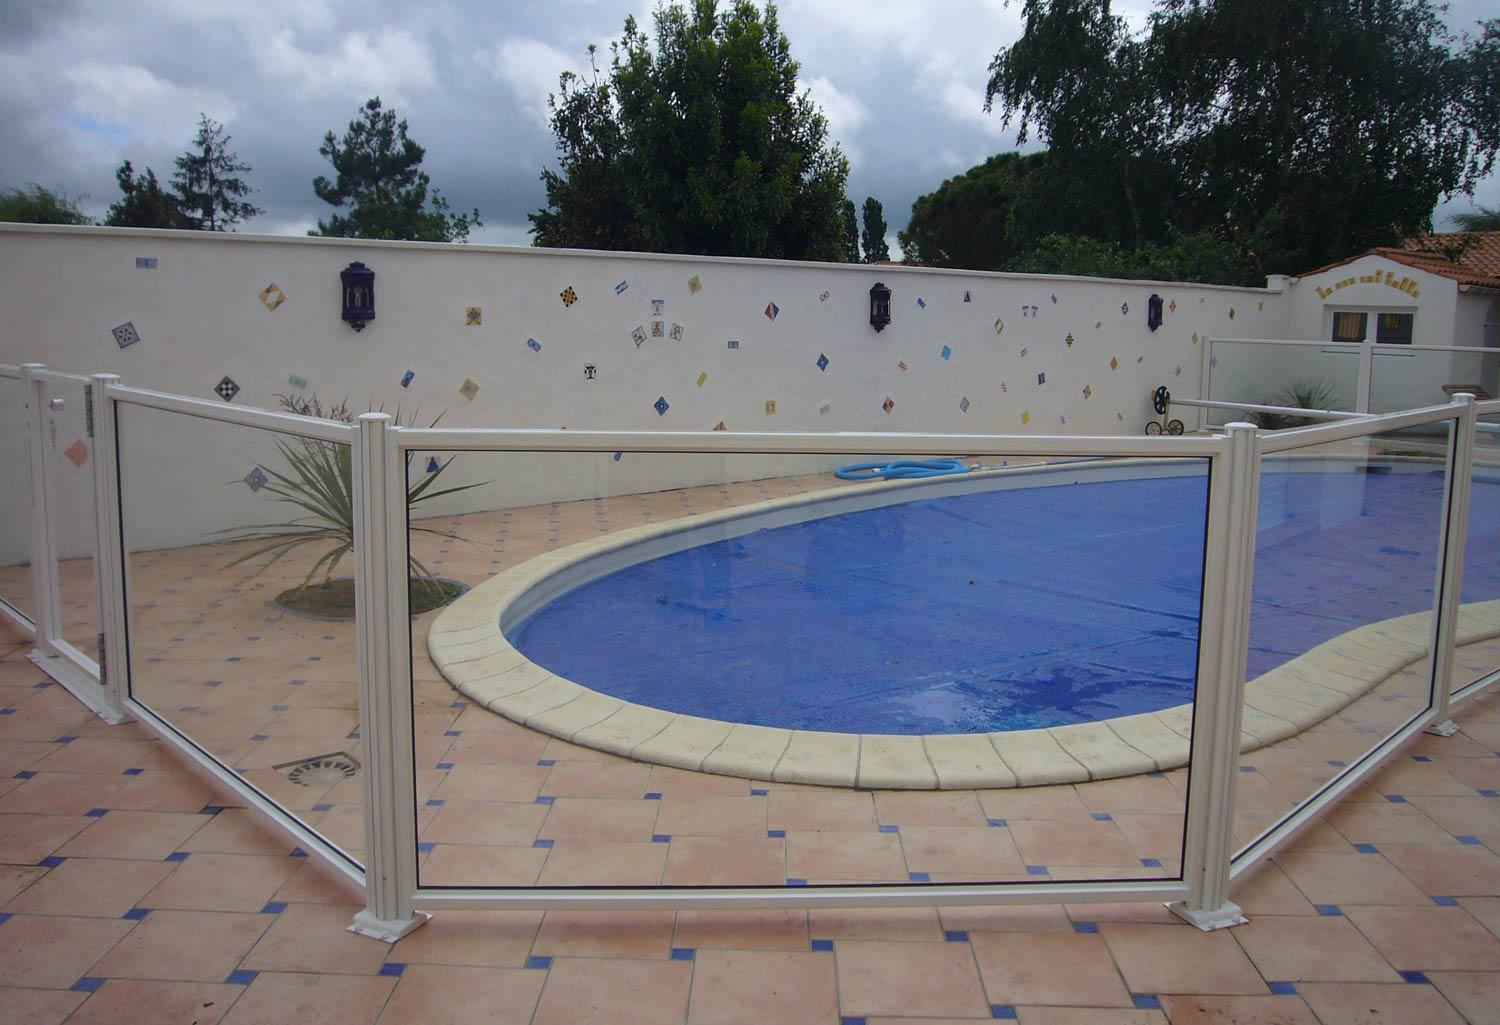 Barriere de protection piscine cloture de piscine en for Cloture pour piscine gonflable